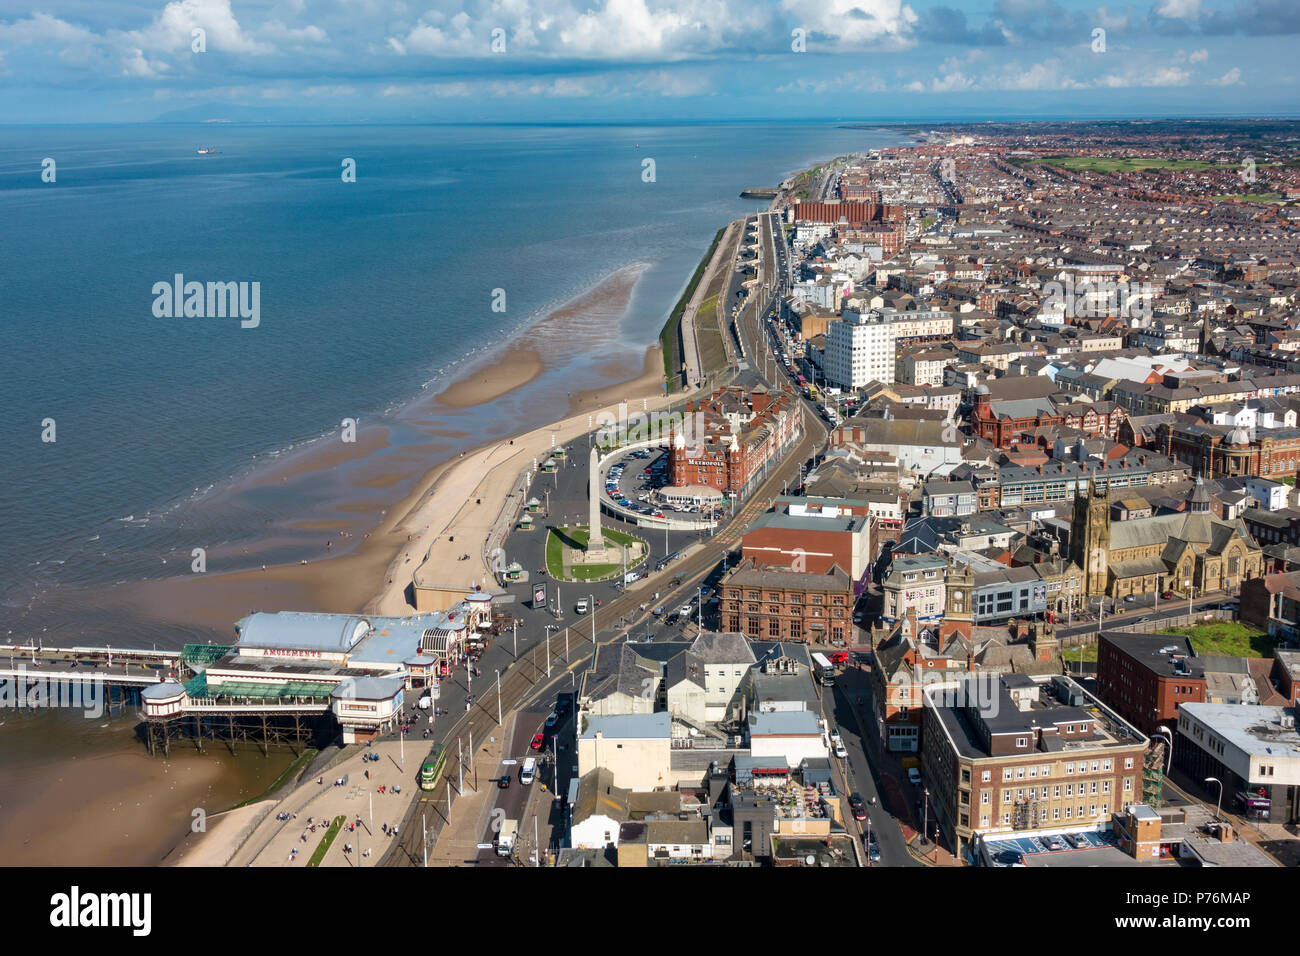 View from the top of Blackpool Tower - Stock Image